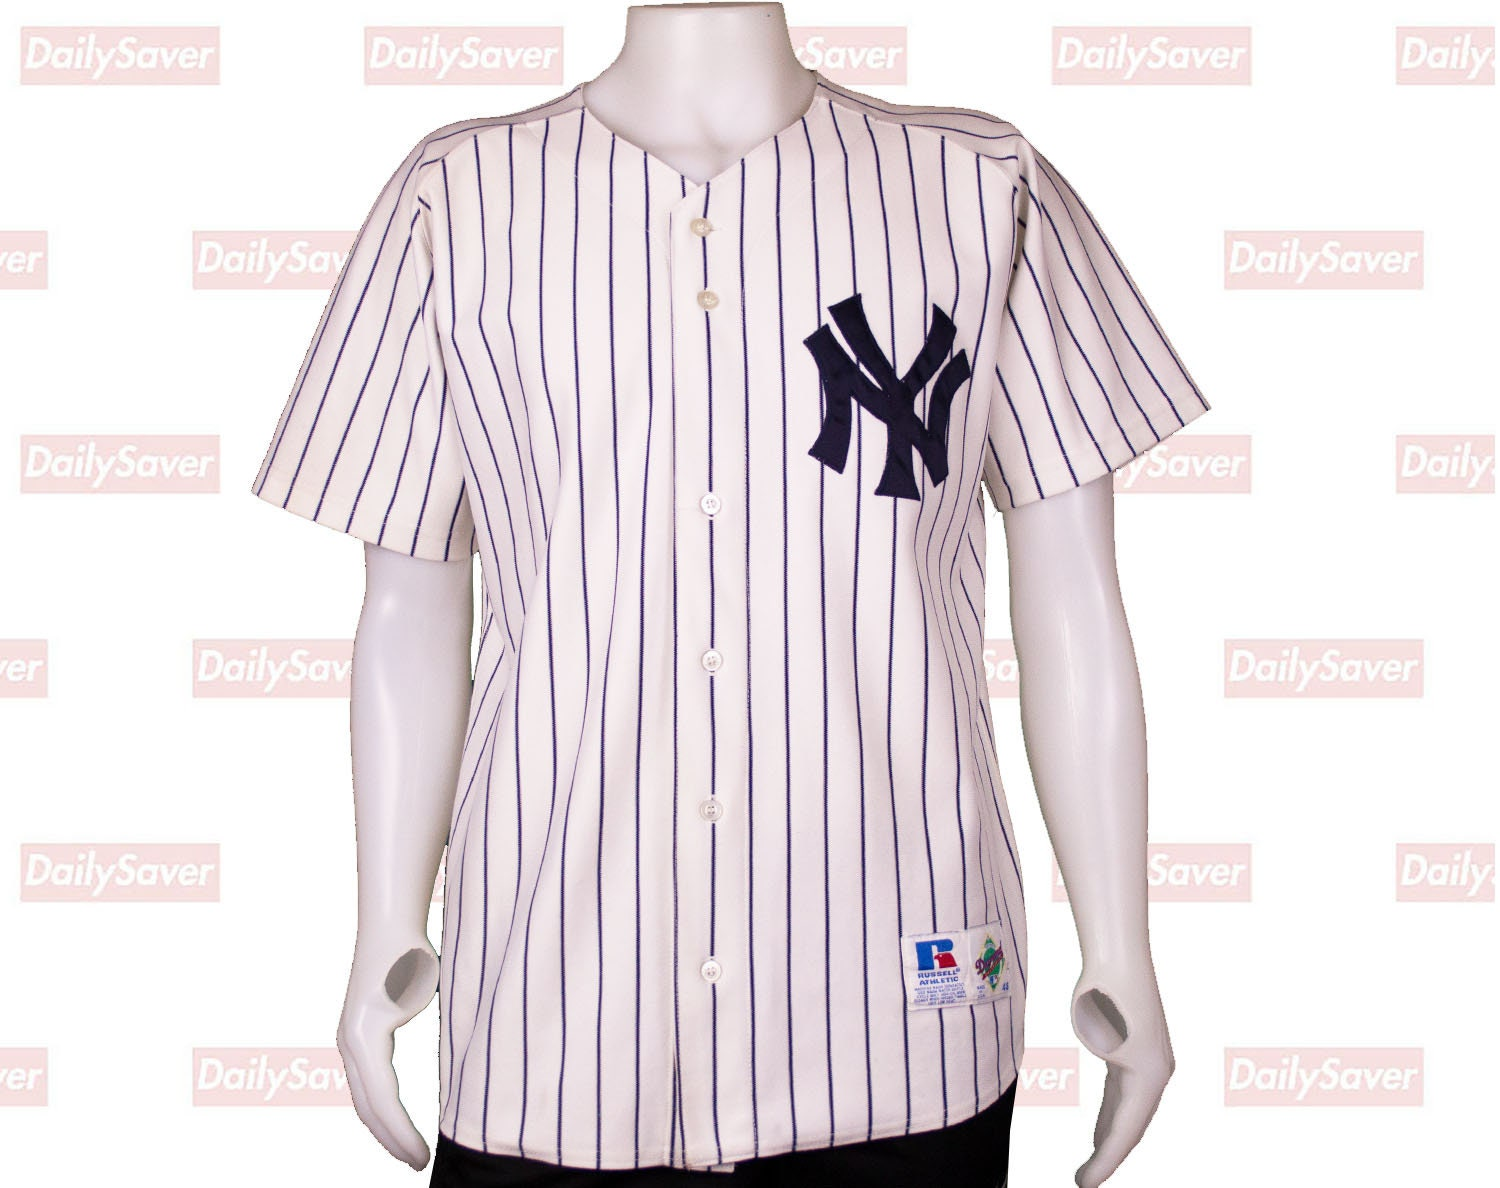 detailed look 06aa9 85276 New York Yankees jersey Rare Authentic Diamond Collection Pinstripe Jersey  By Russel Athletics ny yankees jersey